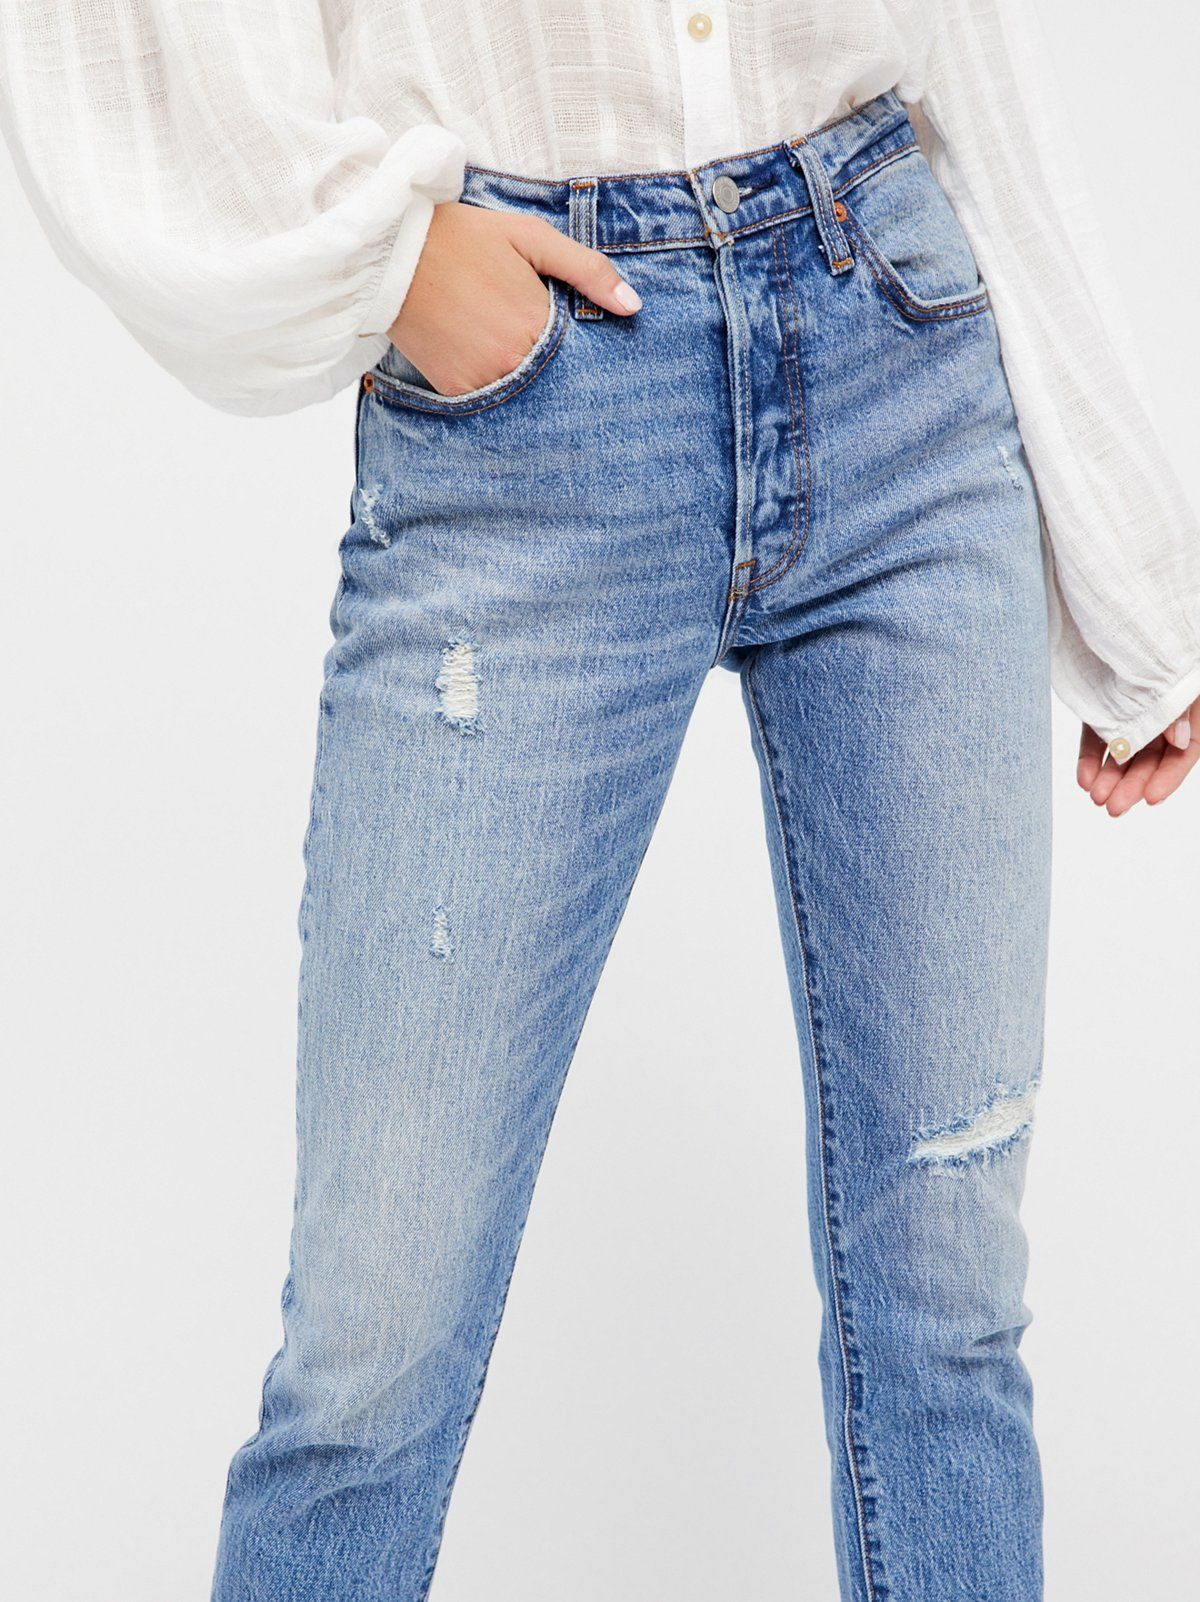 030c592fa188 501 Skinny Jeans | The iconic Levi's 501 has been reimagined with a slimmer skinny  leg and a high-rise. * Fits straight through the hip and thigh.